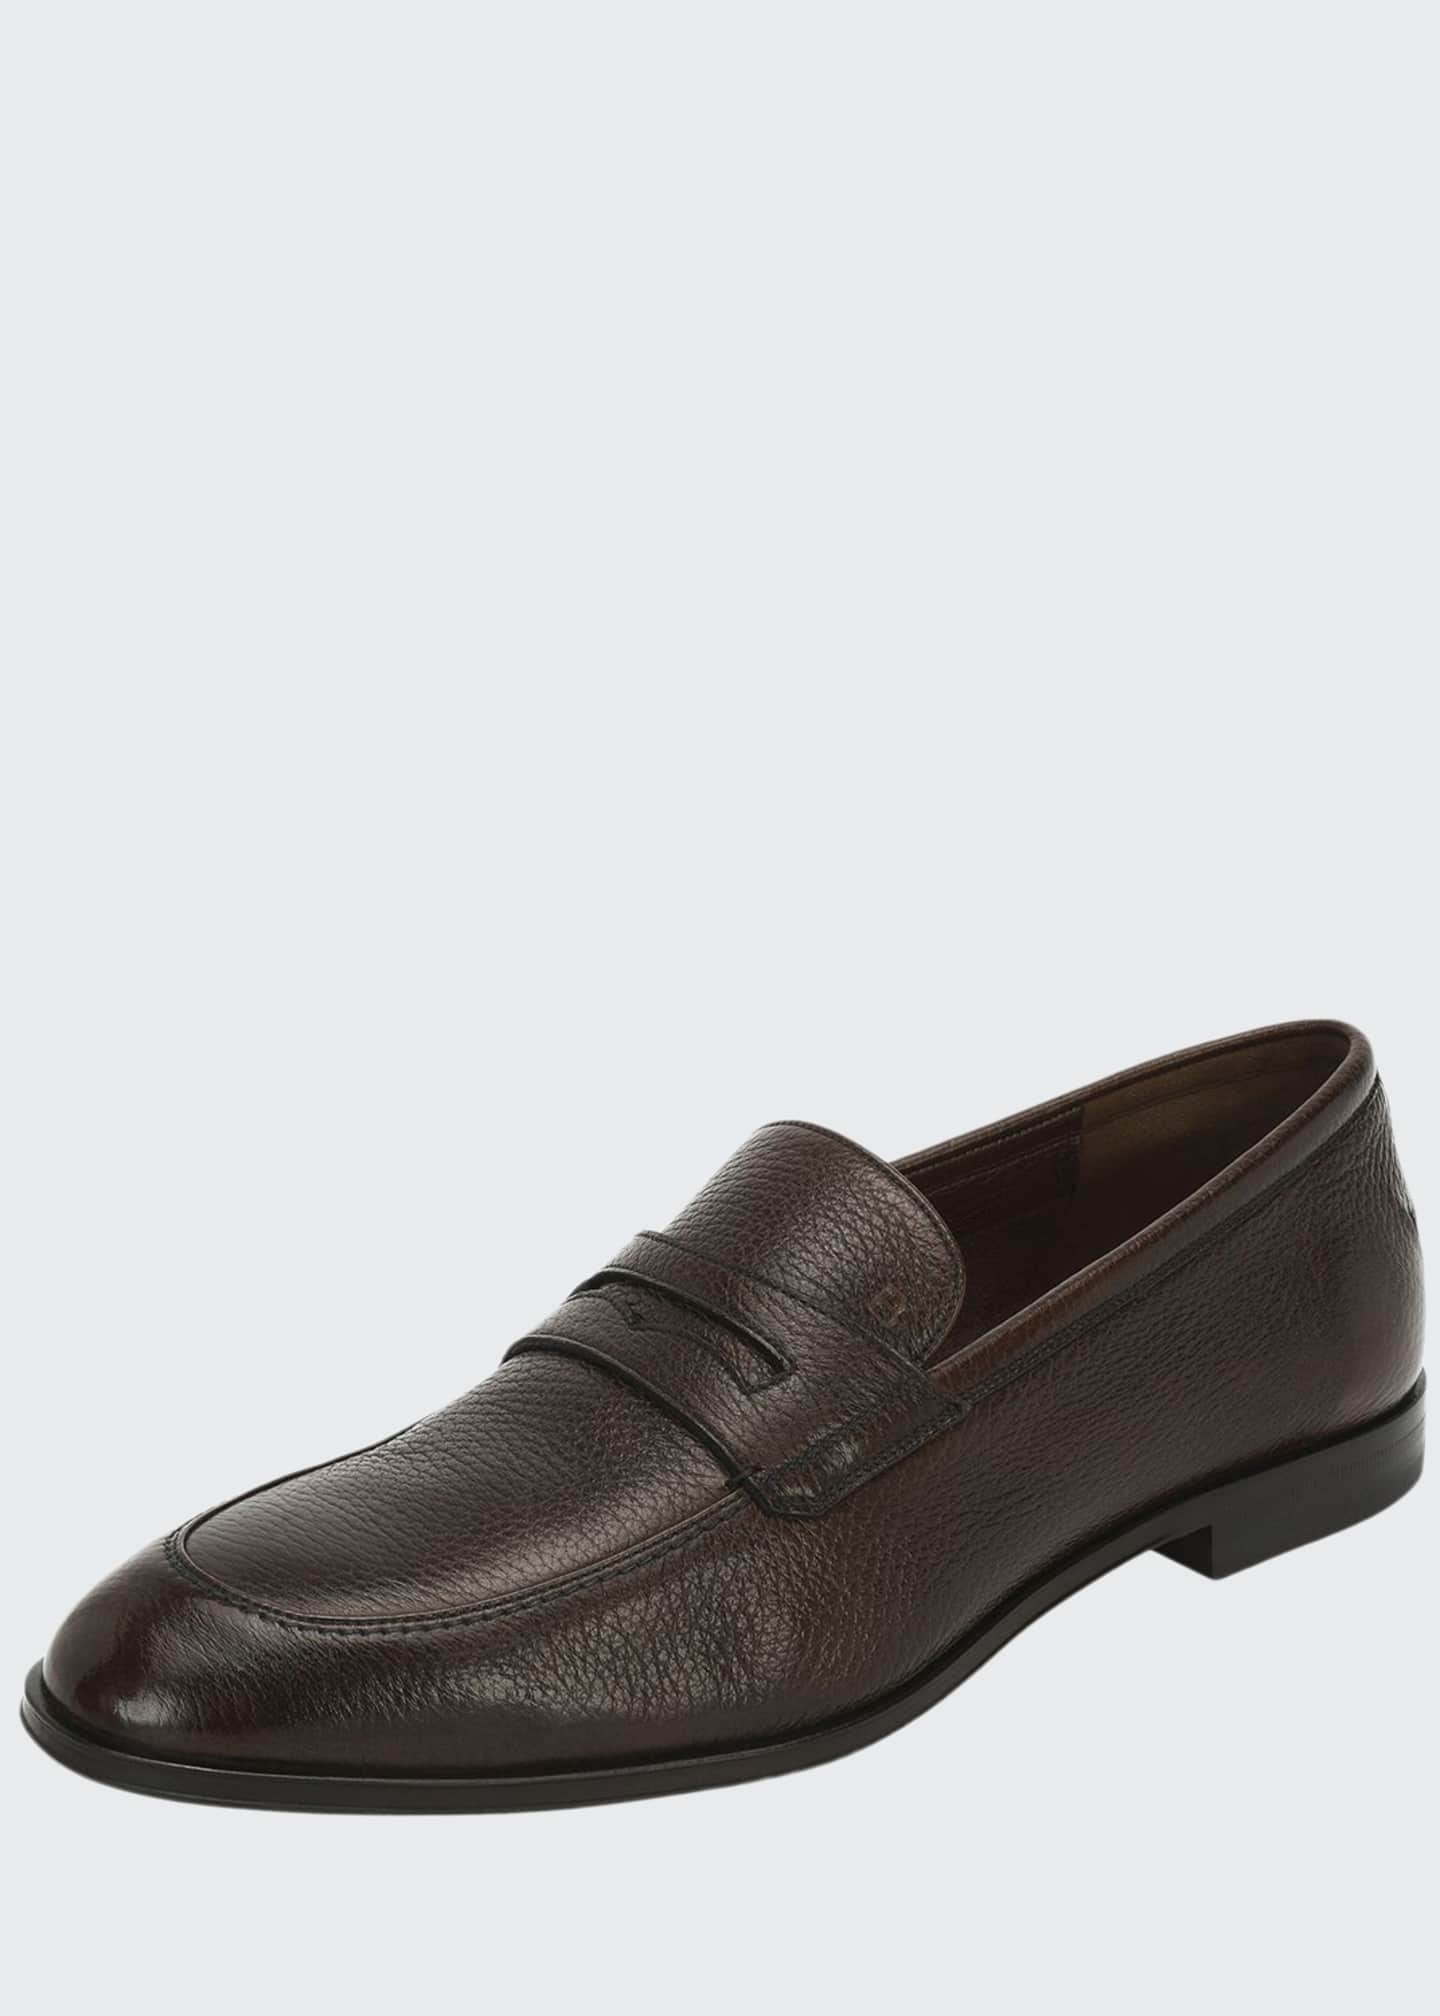 Image 1 of 3: Webb Leather Penny Loafer